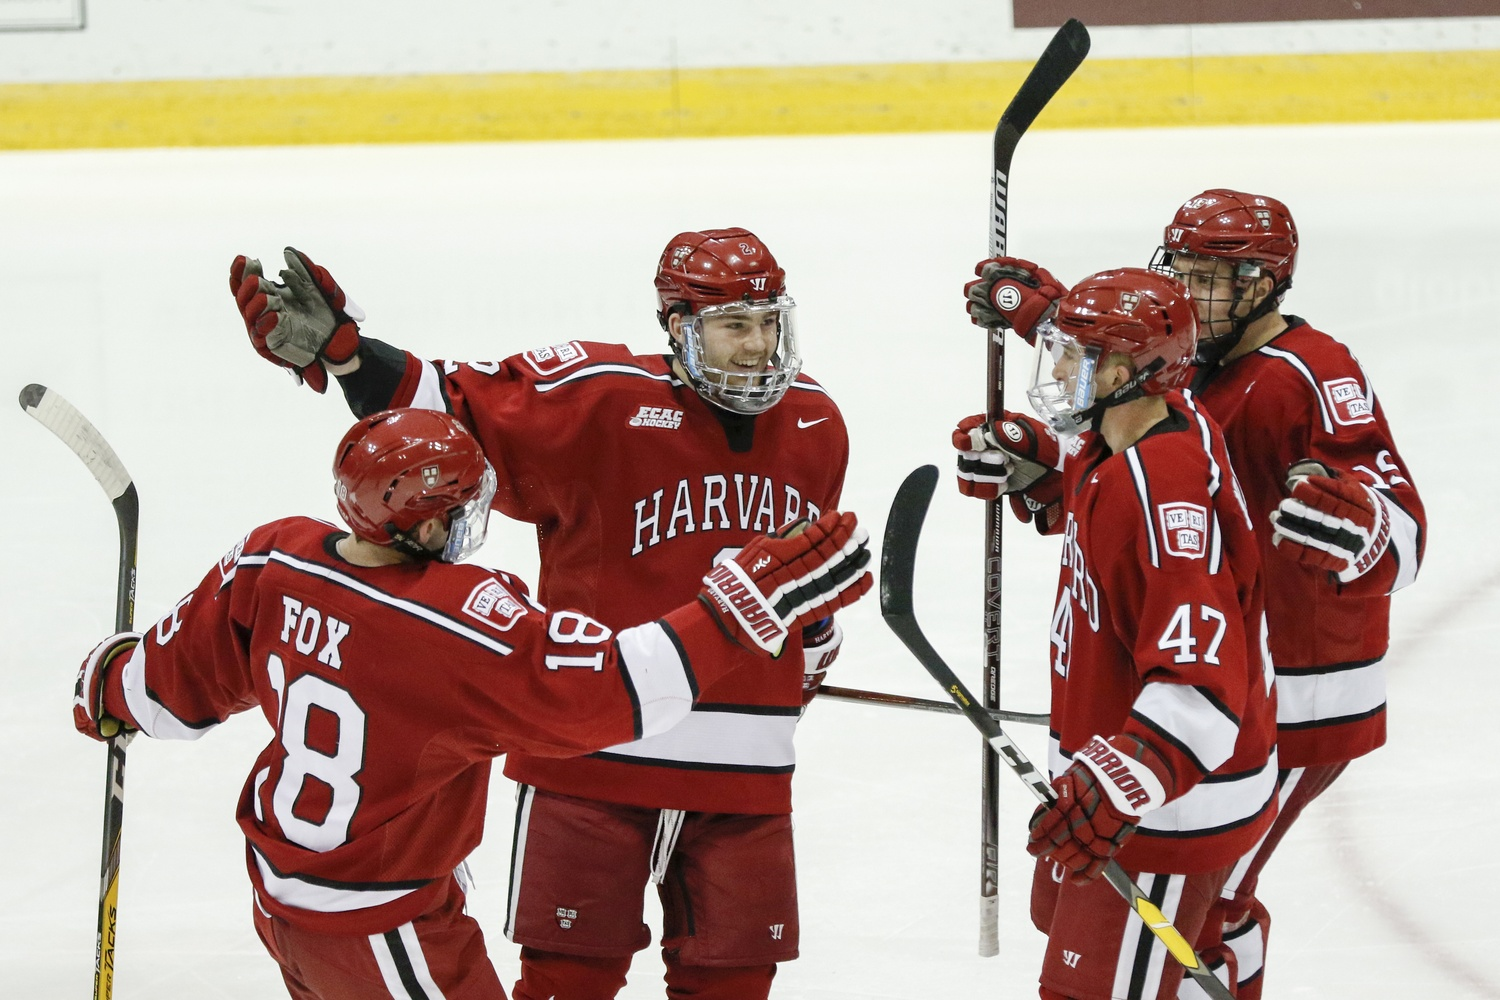 The Crimson and its top-ranked power play will face off against Cornell in its quest to break a three-game losing streak at the NHL's oldest arena.